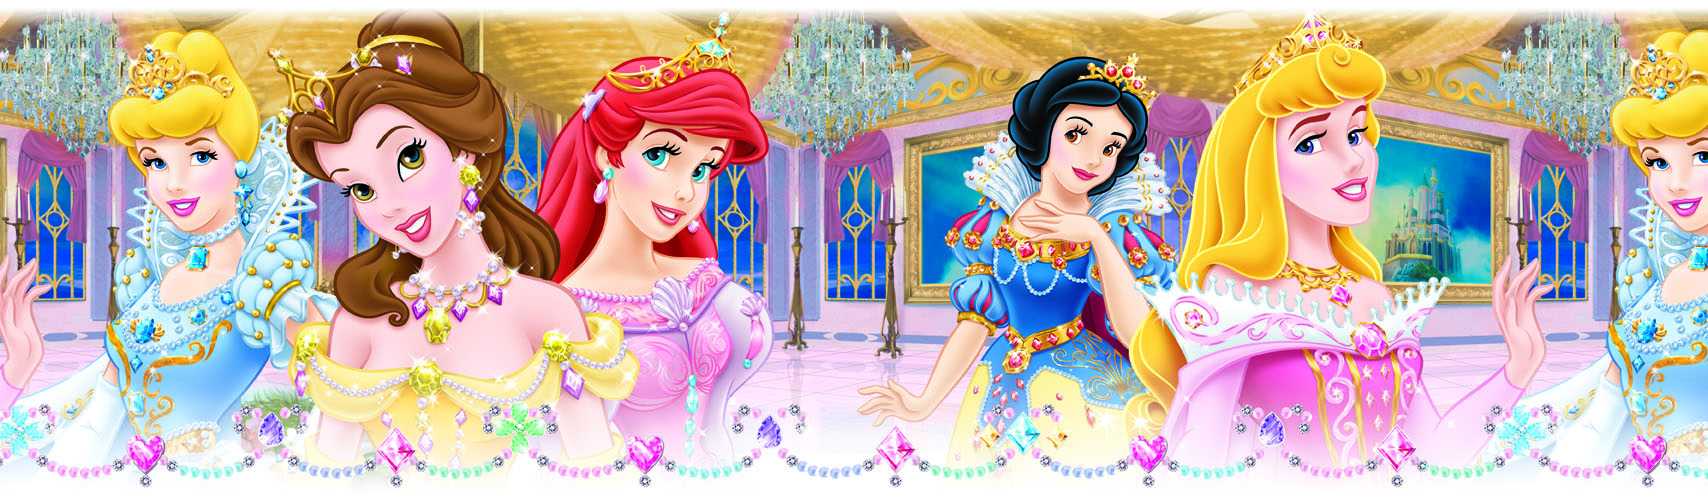 Guarda autoadhesiva Princesas DISNEY 1225-1 Decolife Muresco